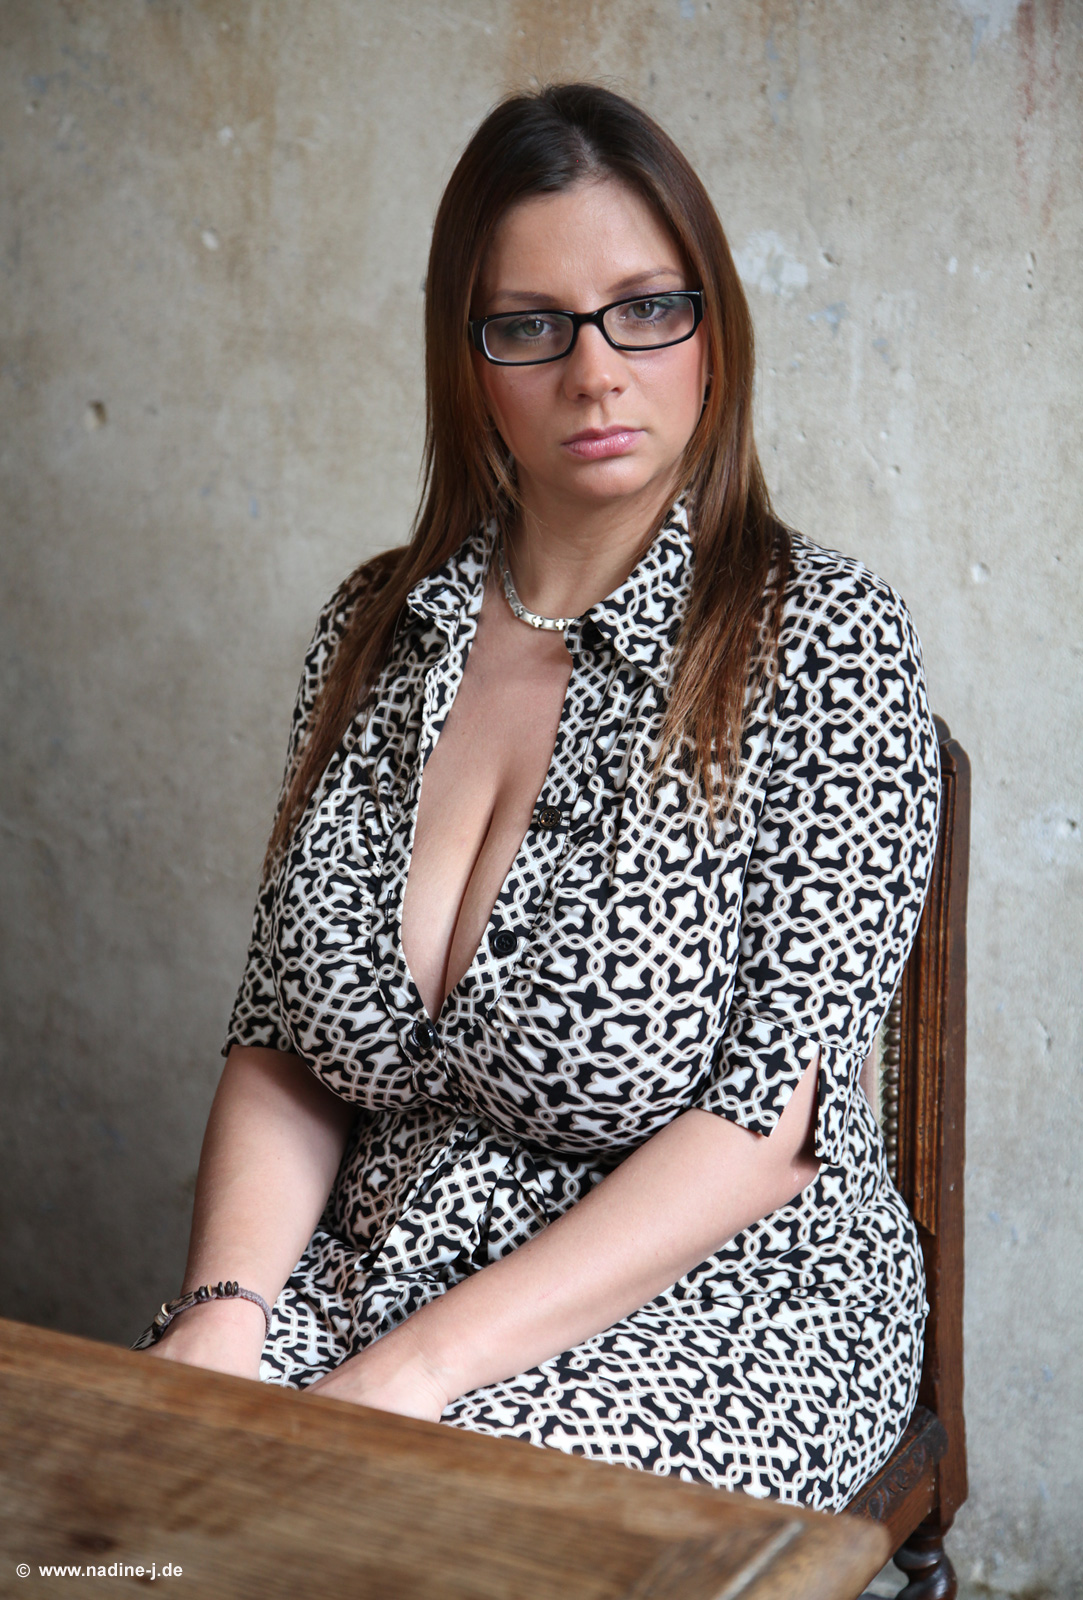 Nadine Jansen: Bubbly, With Glasses, In An Abandoned Villa